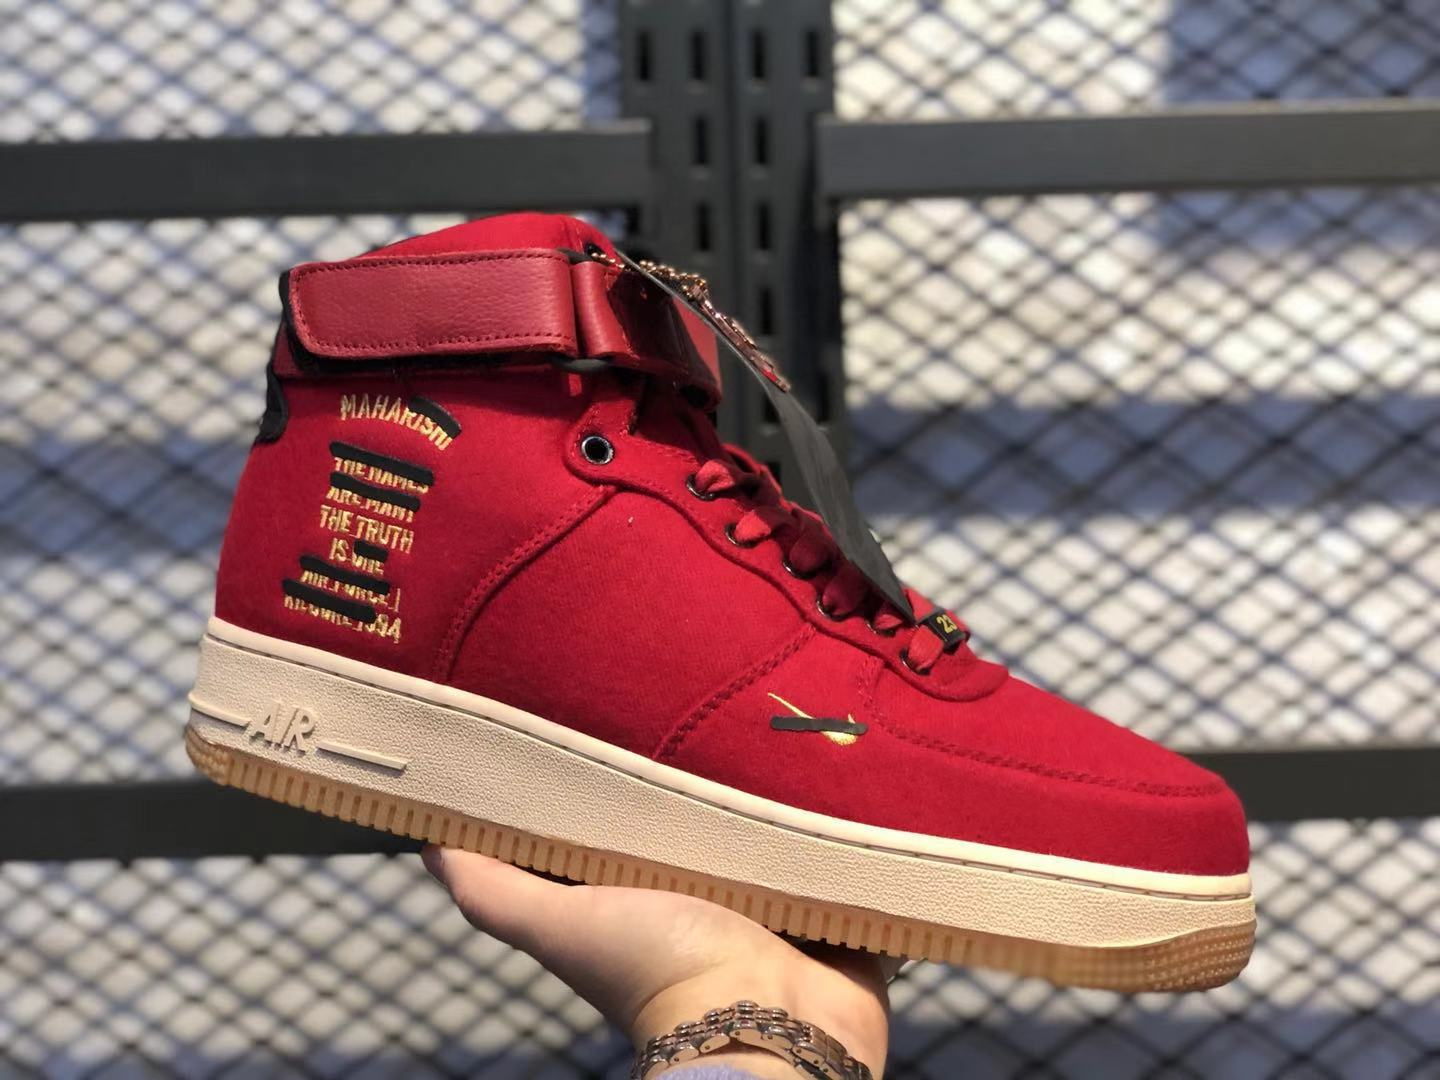 Nike Air Force 1 High Premium Men's Multi Color Red Sneakers Free Shipping